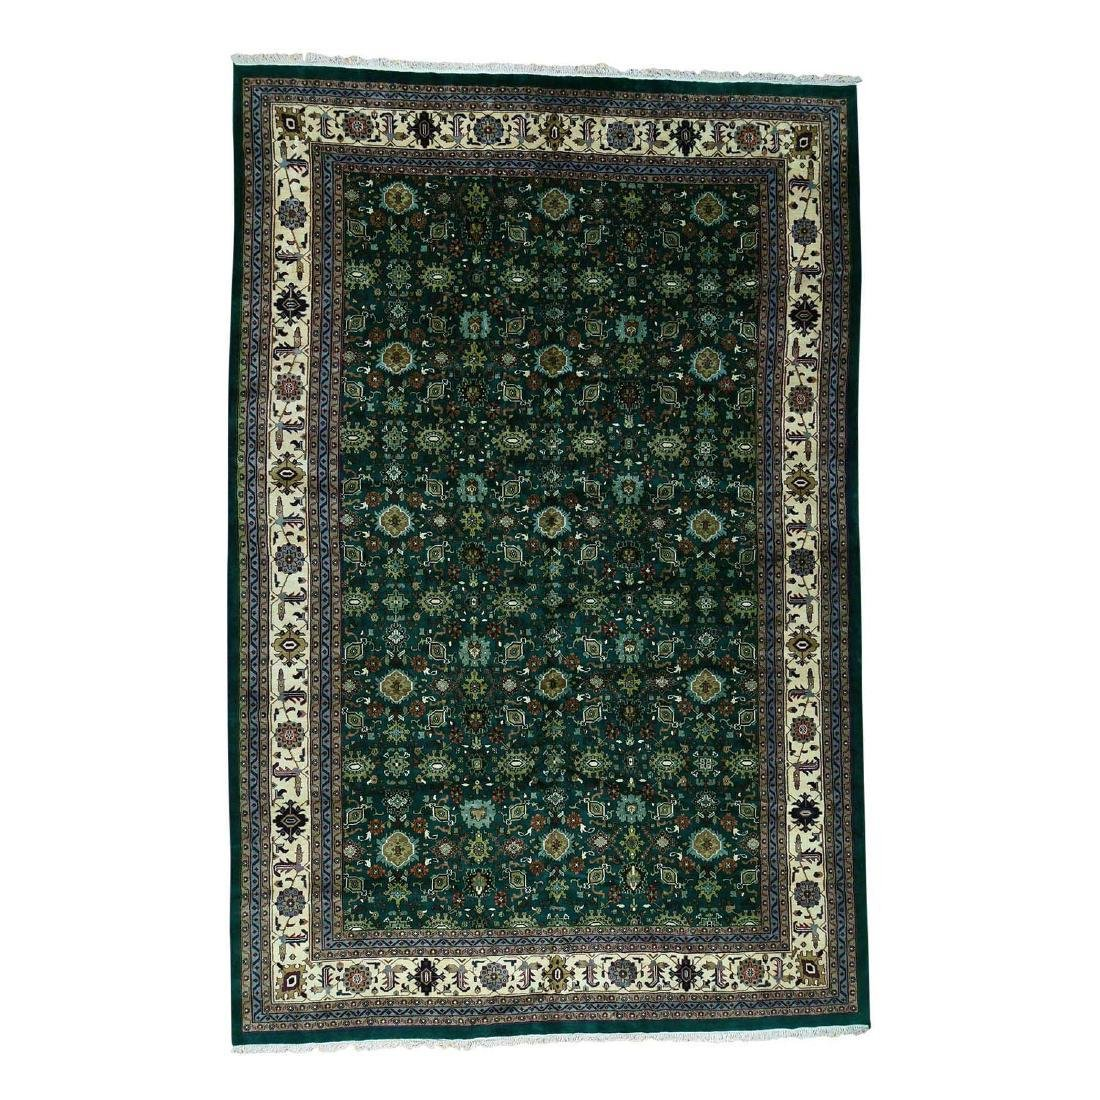 Hand-Knotted Indo Mahal Pure Wool Rug 12.1x18.4